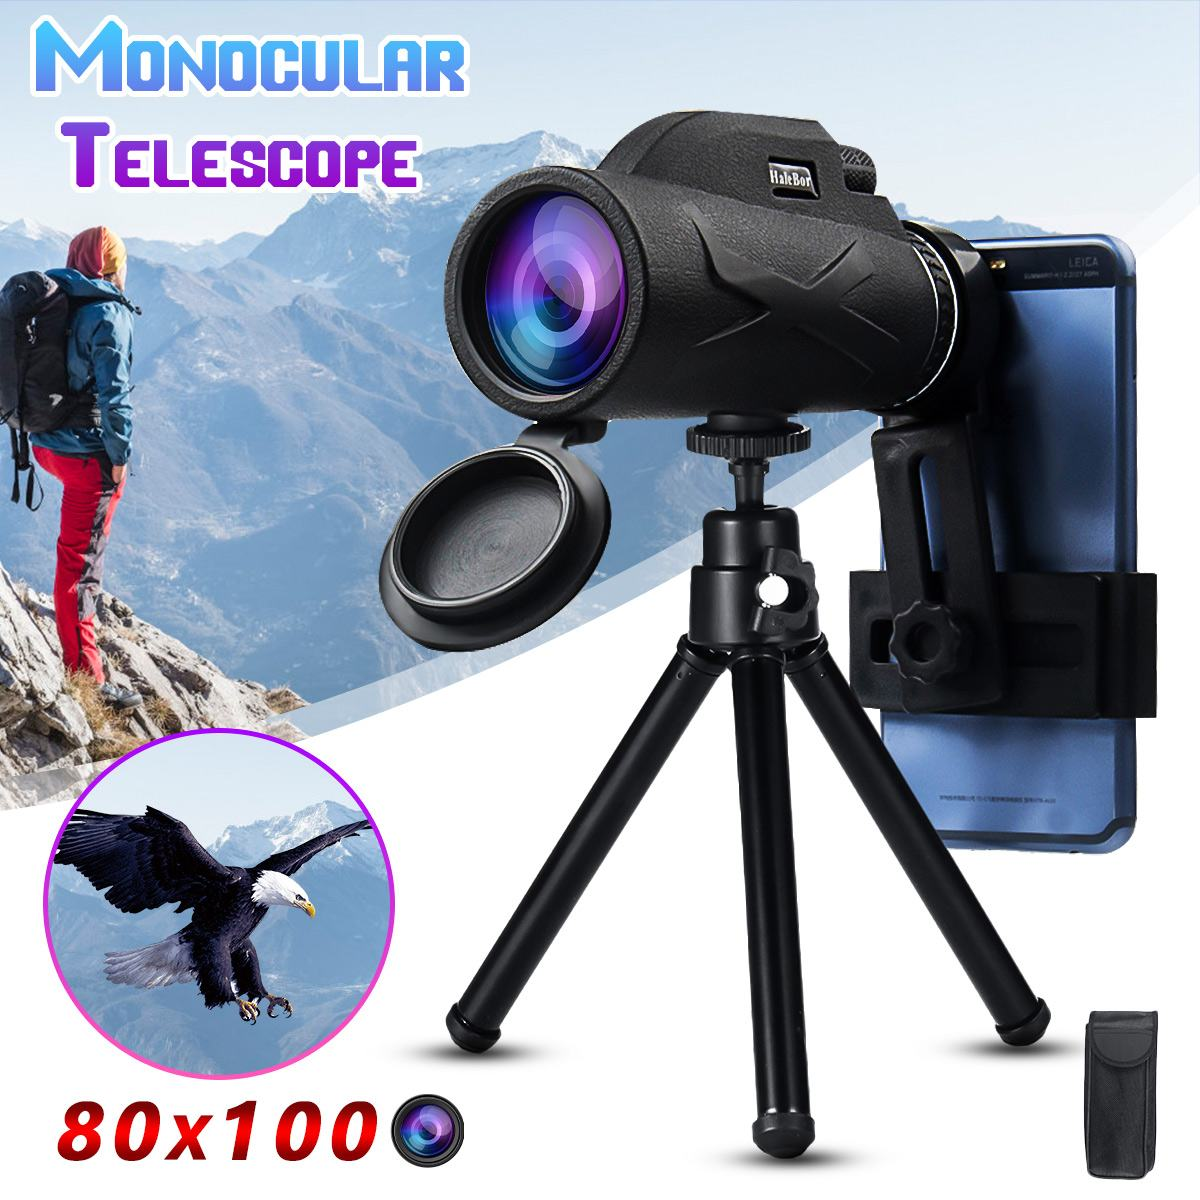 80x100 50x60 Magnification Portable Monocular Telescope Binoculars Zoom Great Handheld Telescope Military HD Professional Huntin